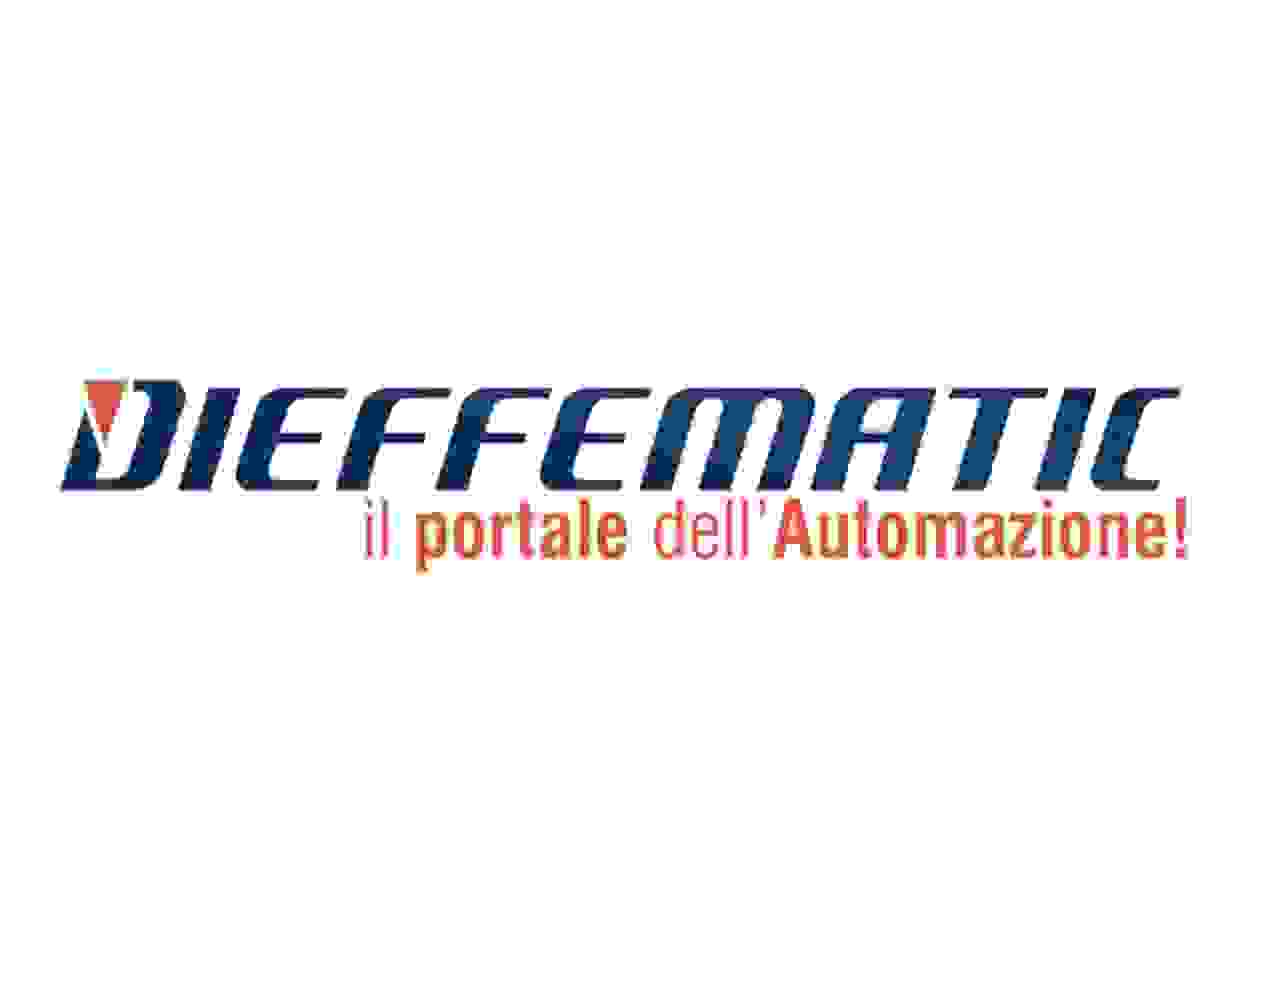 Photo of Dieffematic: porte e cancelli automatici